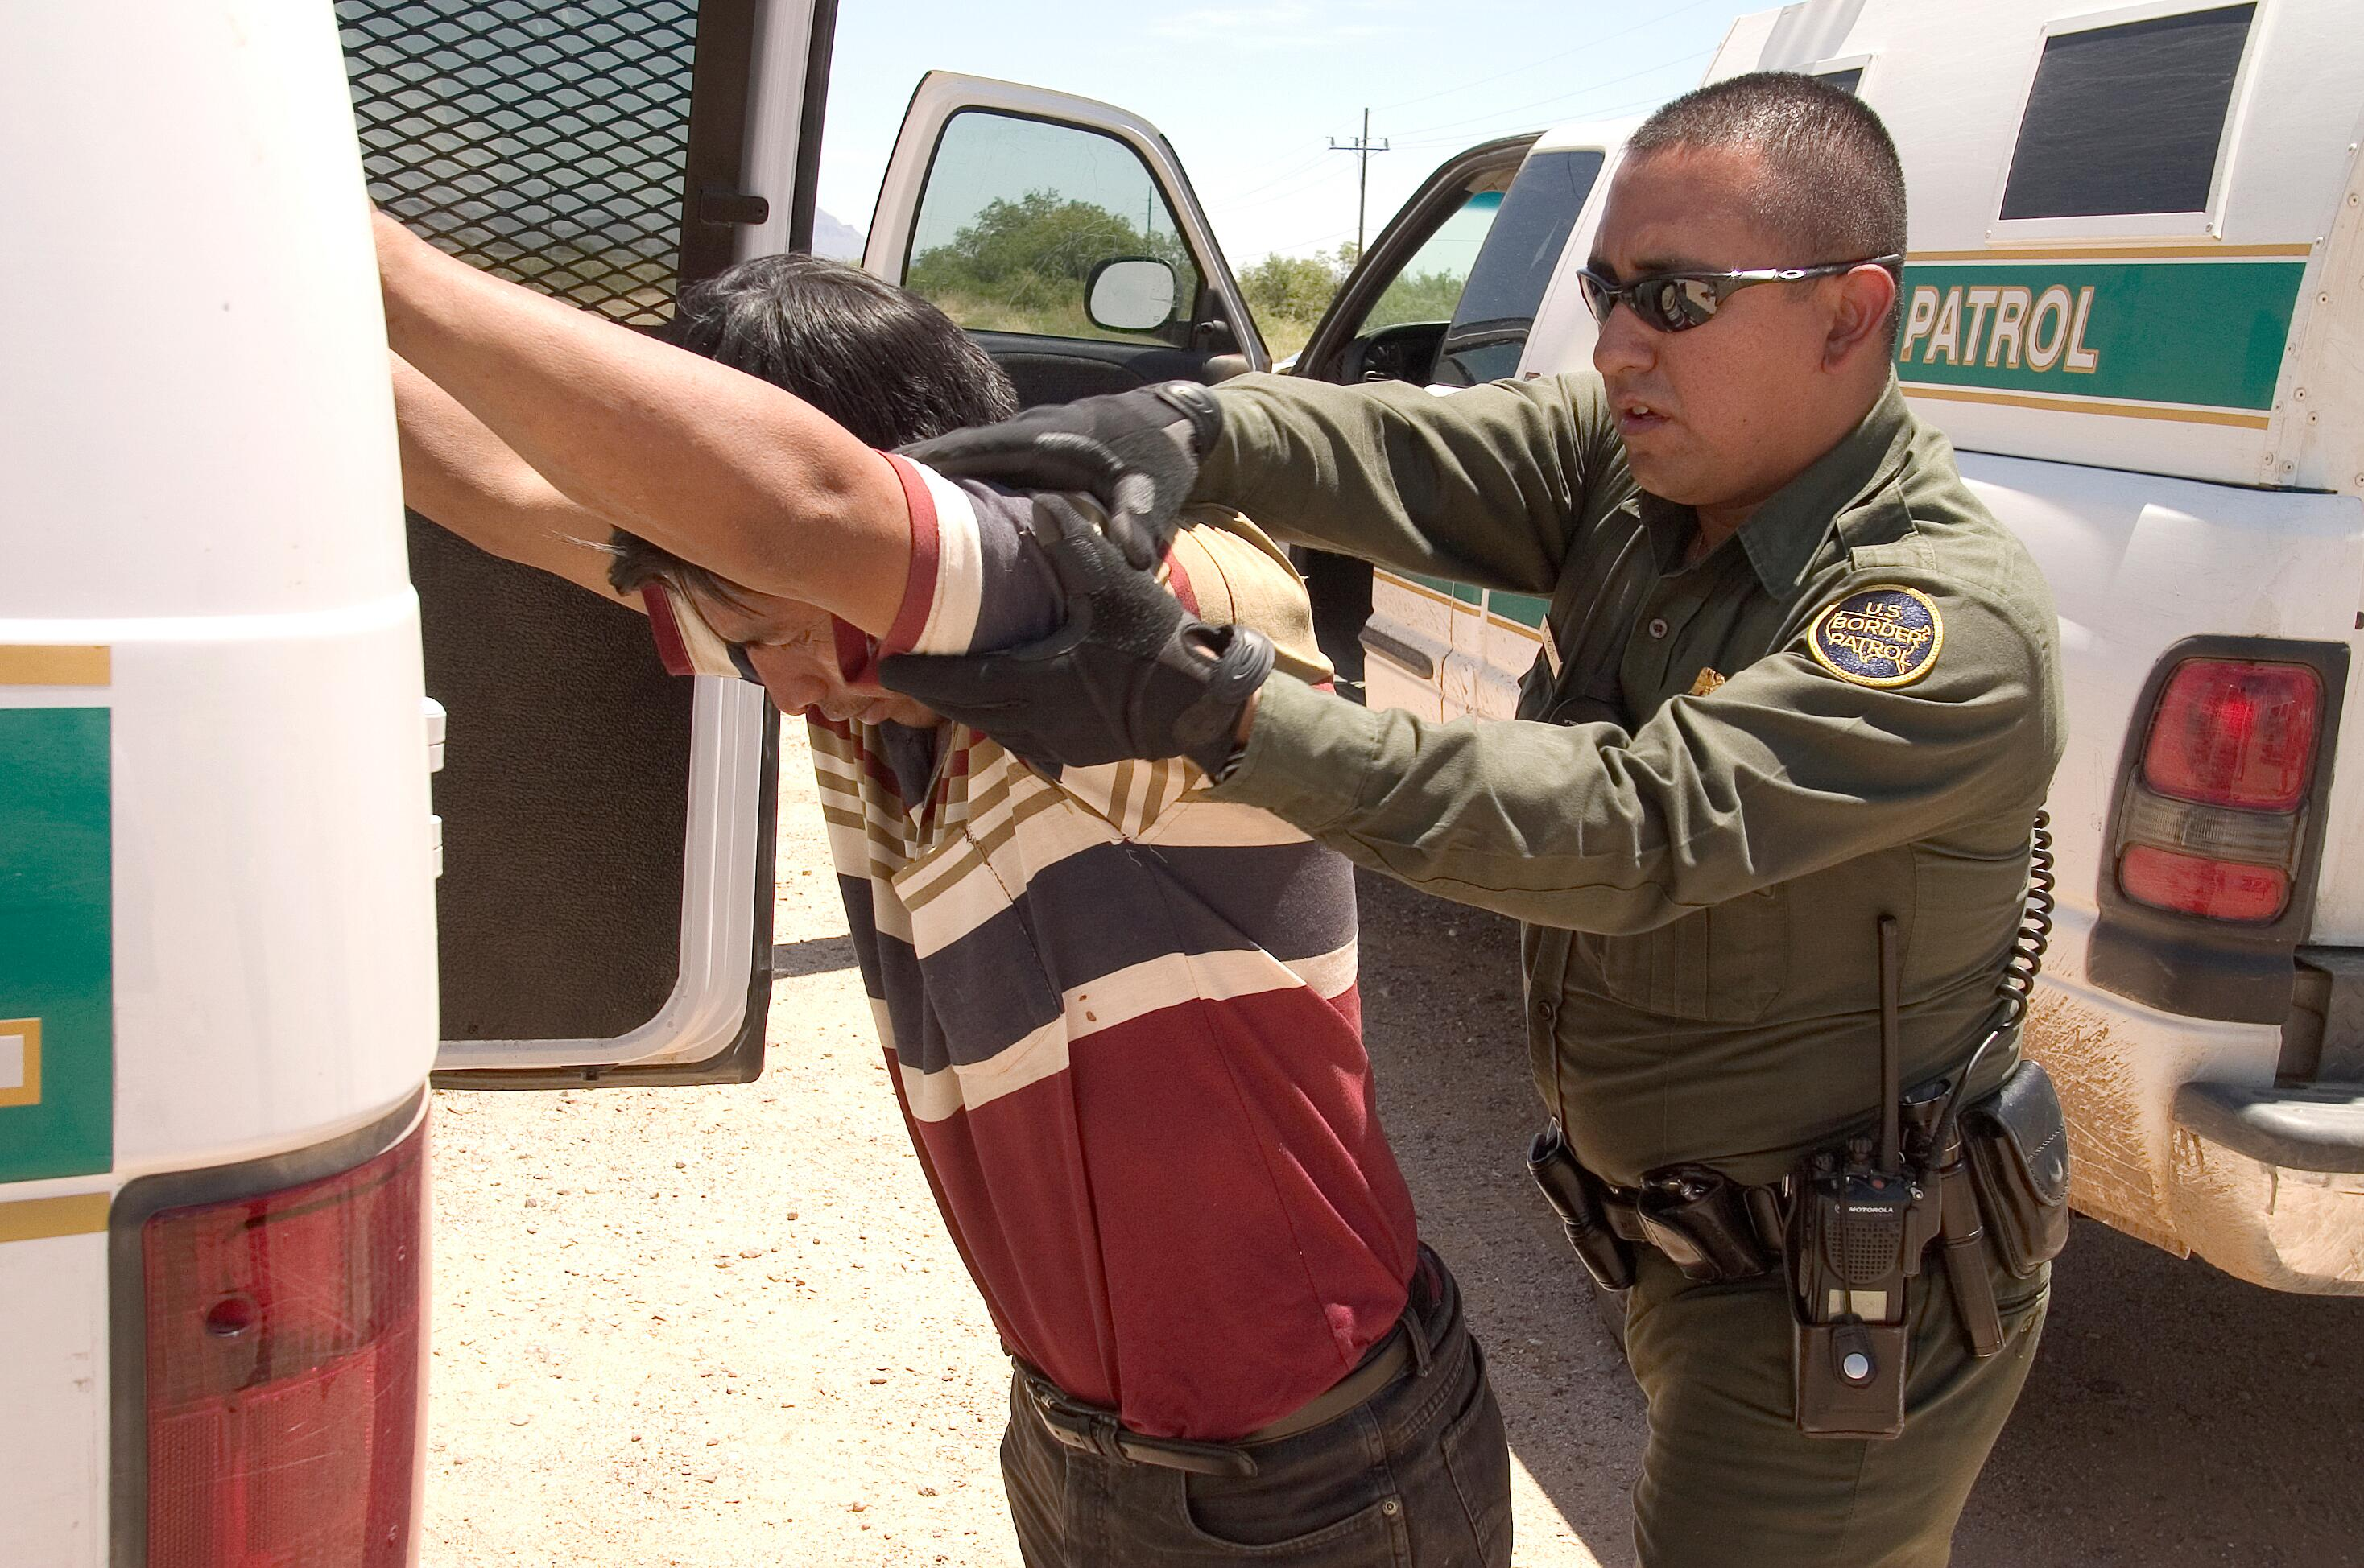 U.S. Border Patrol agent does a pat down of a Mexican being returned to Mexico.